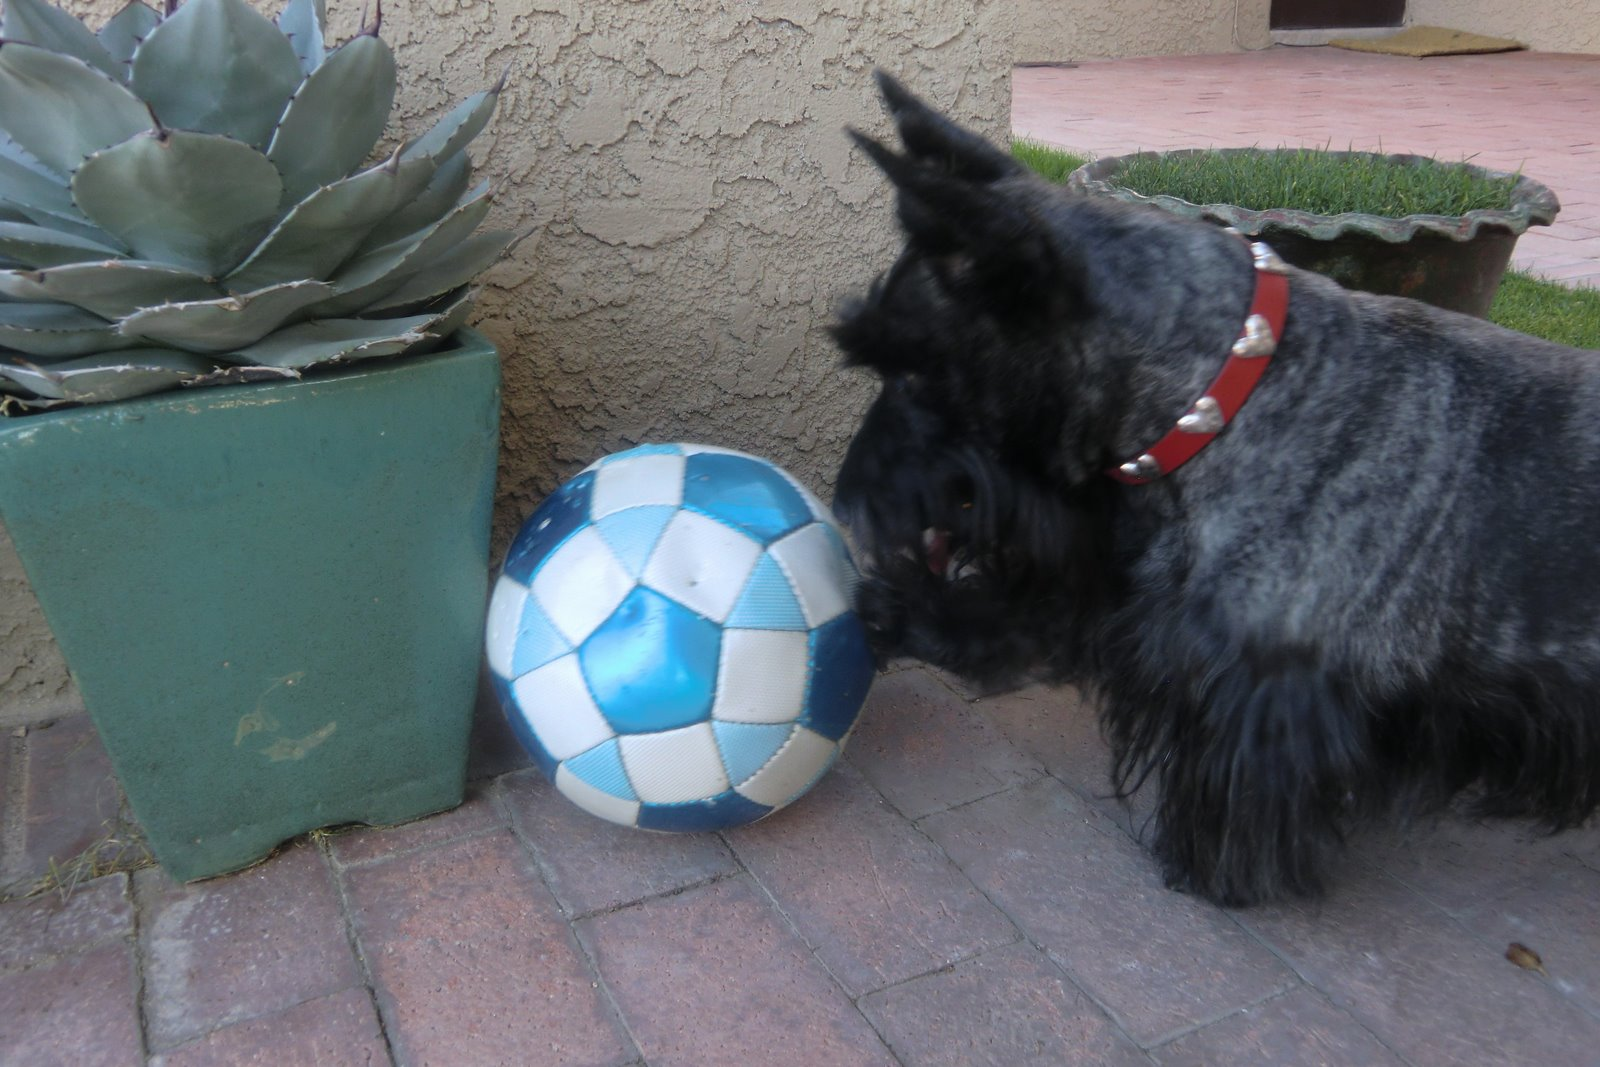 Two Little Square Black Dogs Square Dog Friday Soccer Other fast, easy to use online scrabble cheat and scrabble word finder. two little square black dogs square dog friday soccer